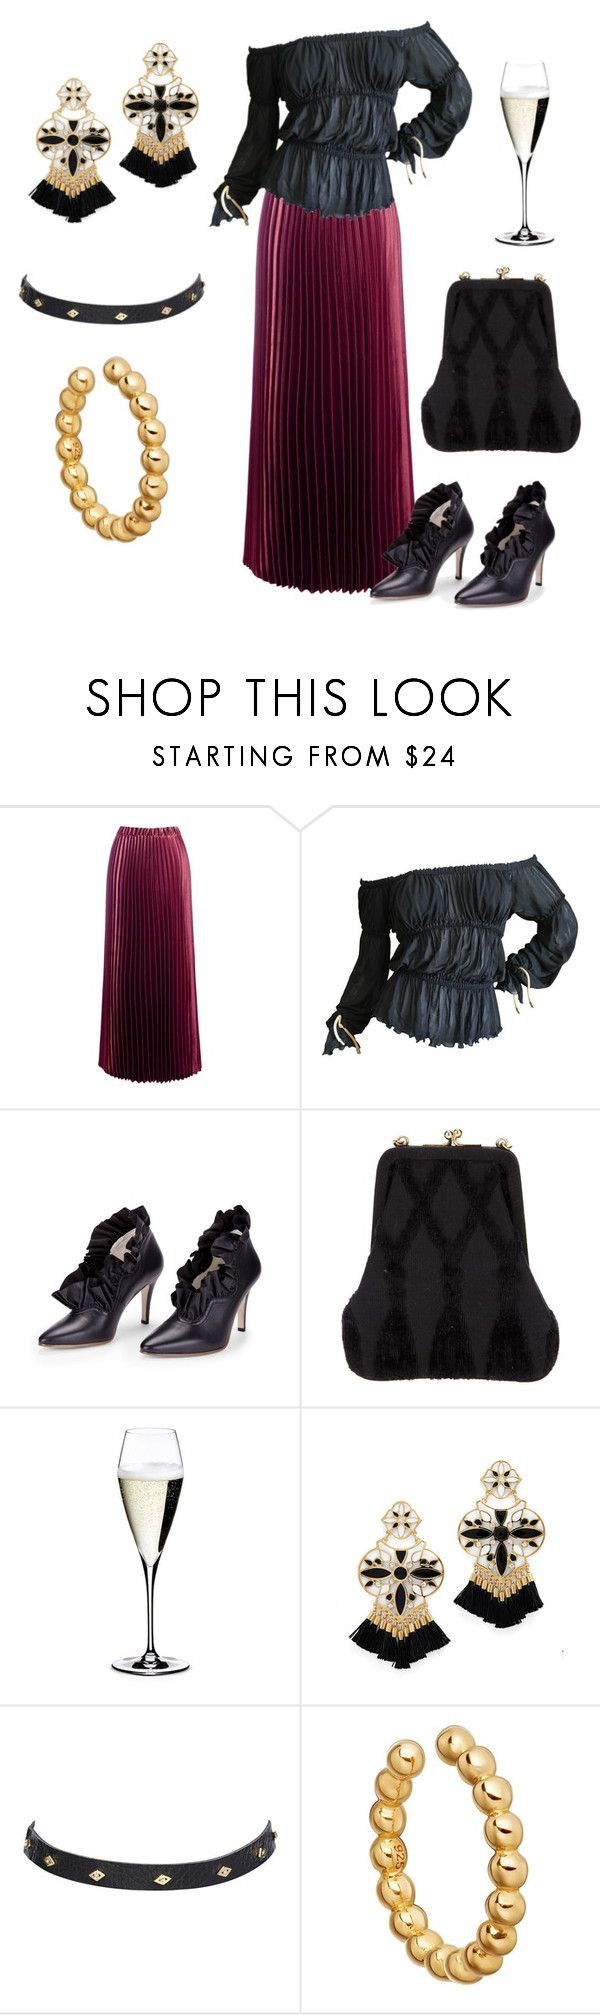 """""""dinner at eight"""" by billyblaze ❤ liked on Polyvore featuring Sans Souci, Tom Ford, Zoe Lee, Roberta Di Camerino, Riedel, Kate Spade and Astley Clarke"""